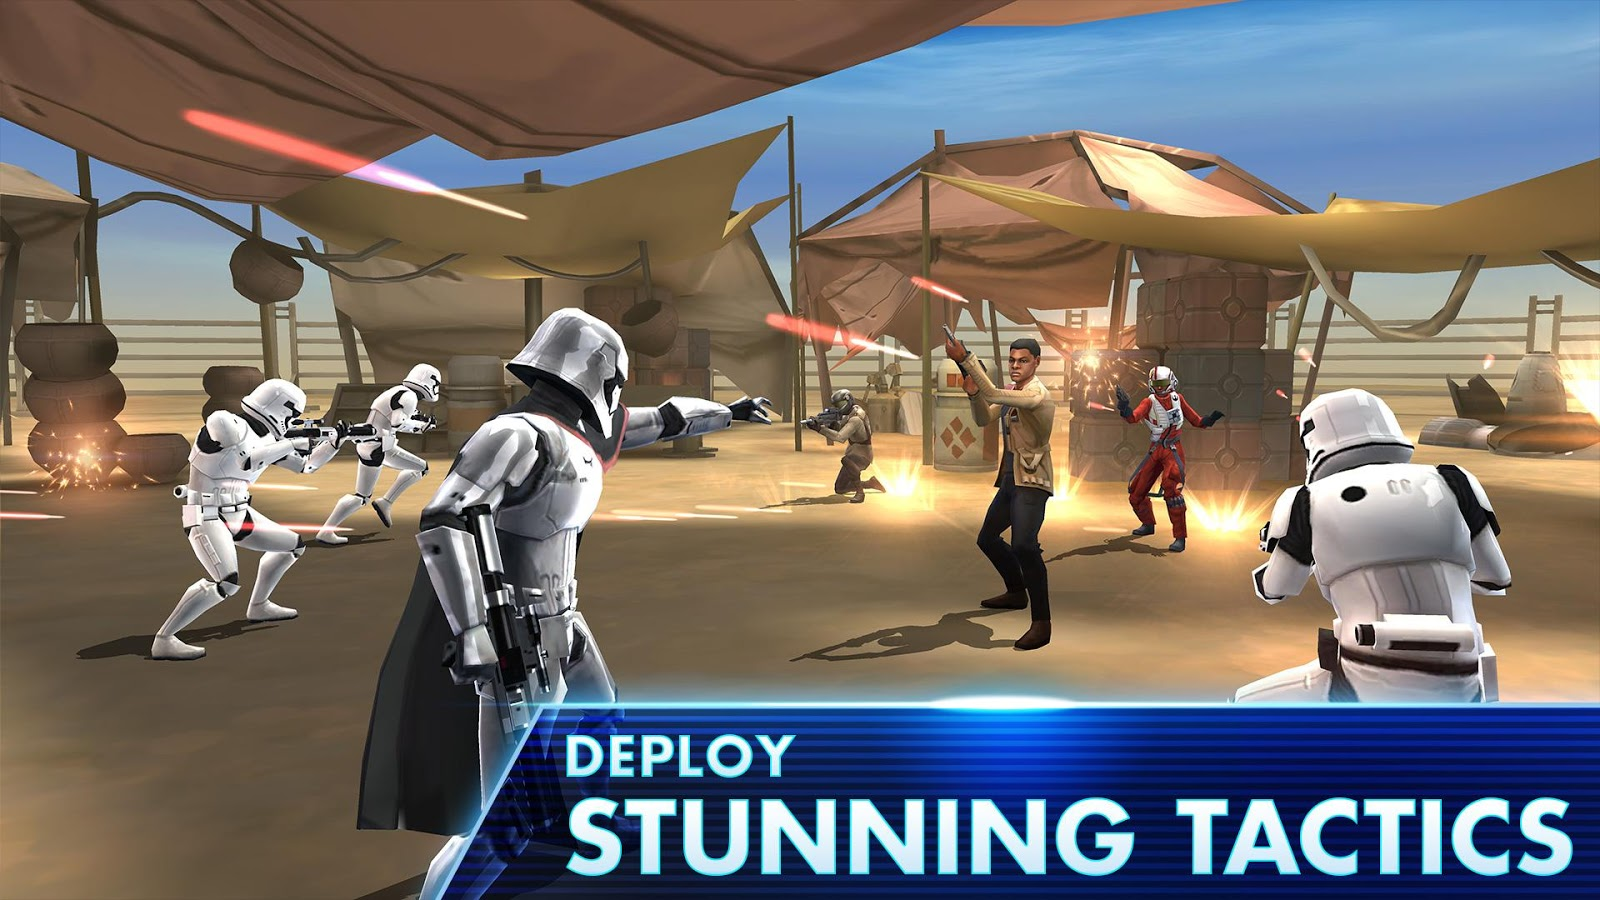 7 Best Star Wars Games For Android Worth Trying | TechUntold